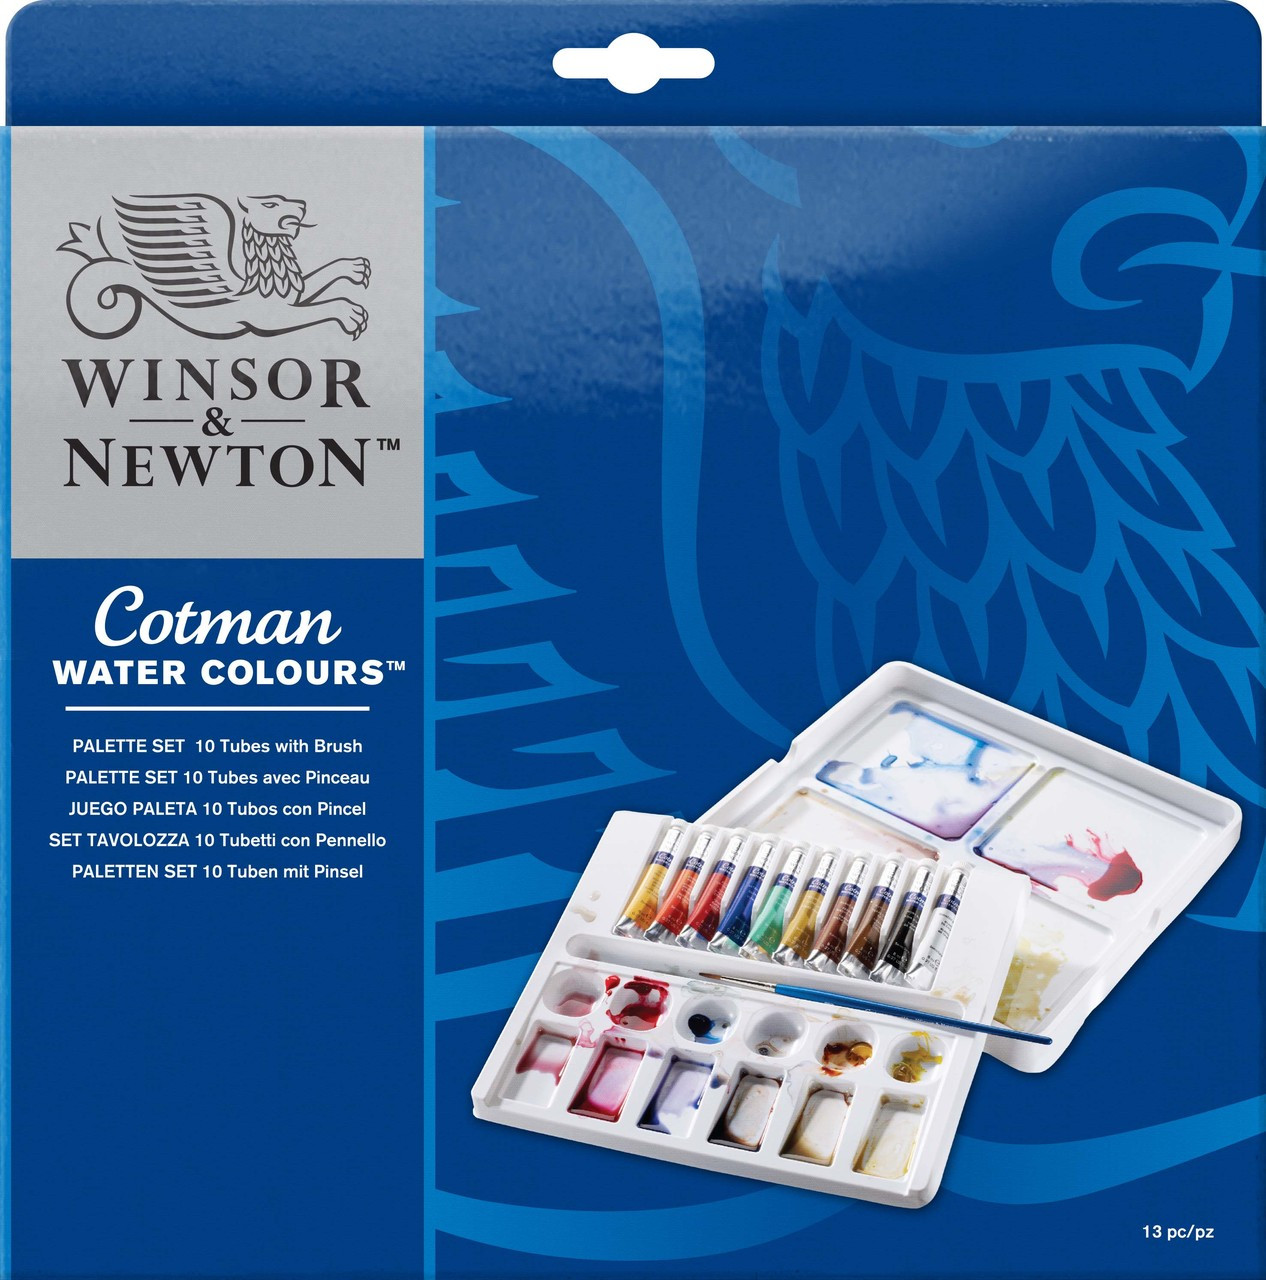 W&N Cotman Palette Set 10pc *Online only*